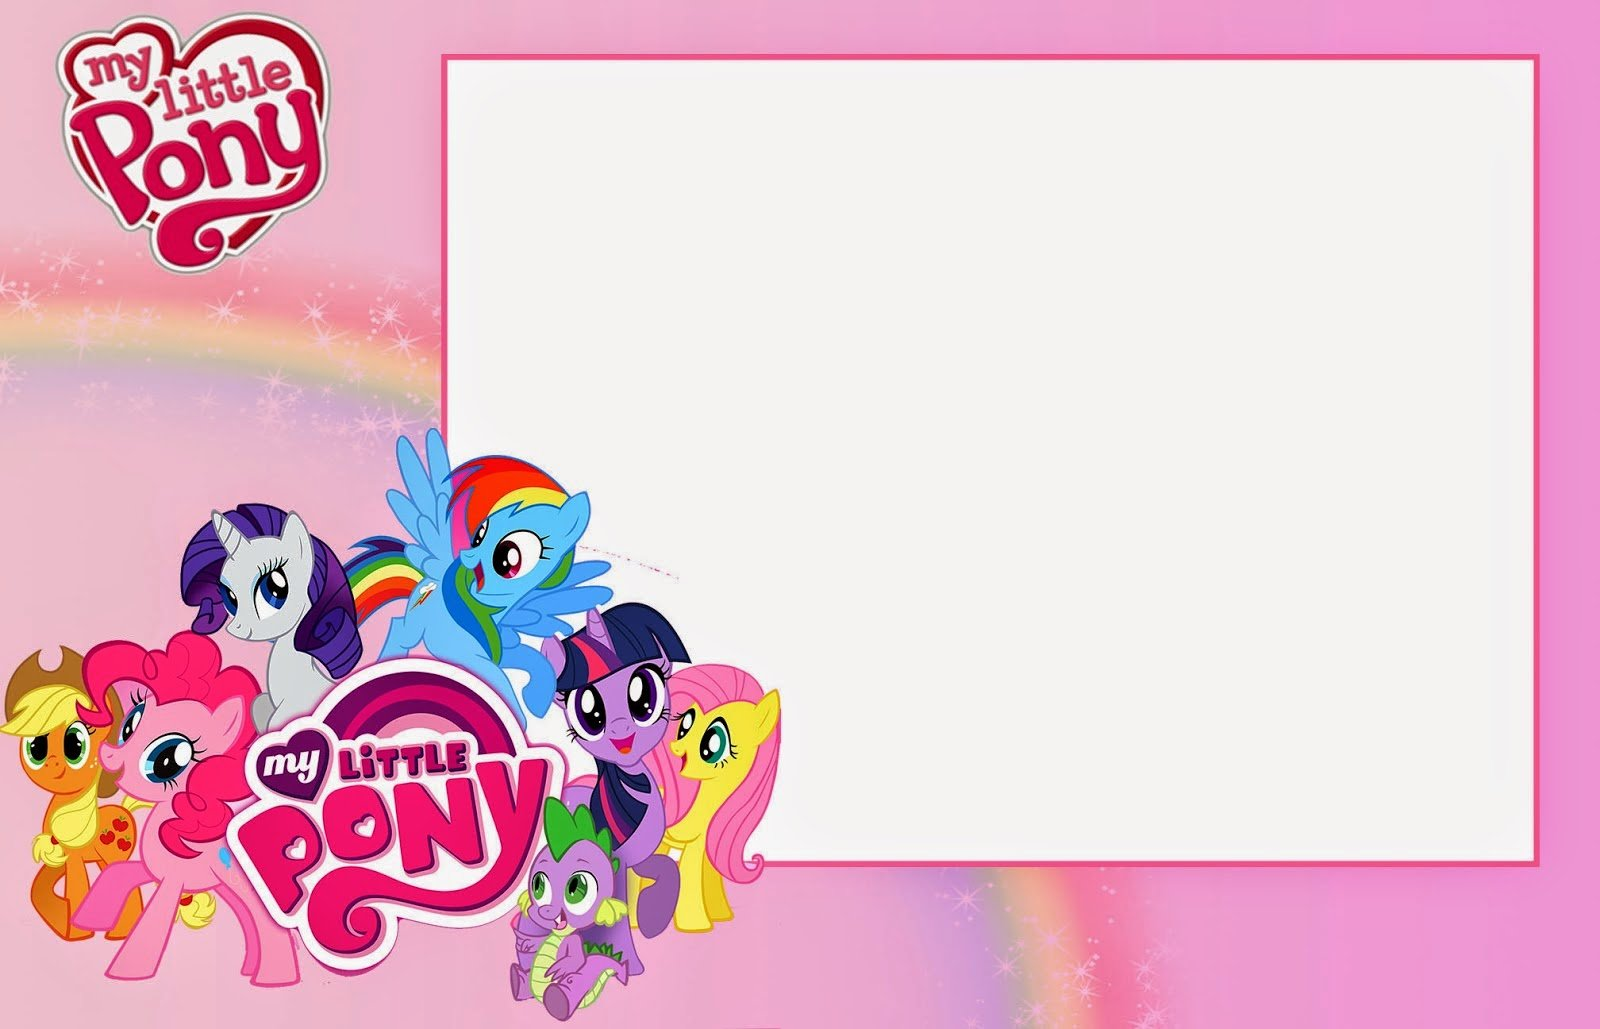 My Little Pony Birthday Invitations Printable Free Elegant With My